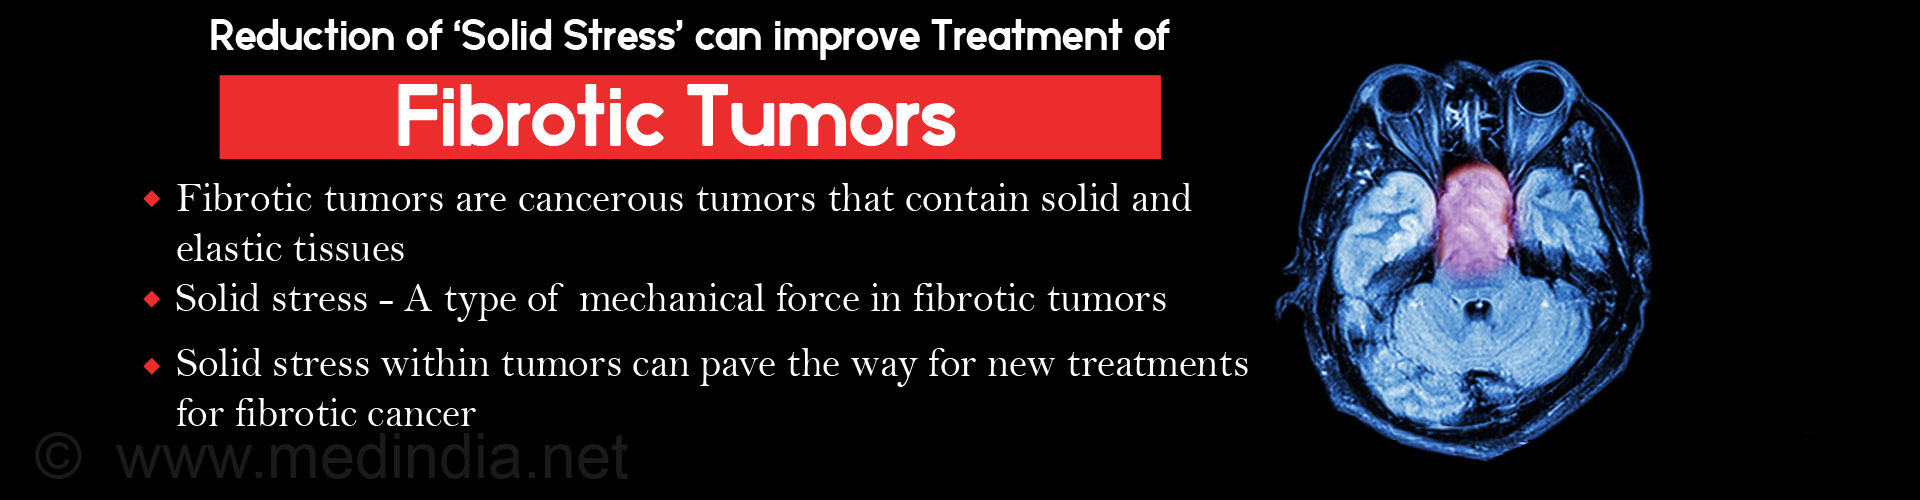 New Methods for Evaluating Solid Stress in Fibrotic Tumors